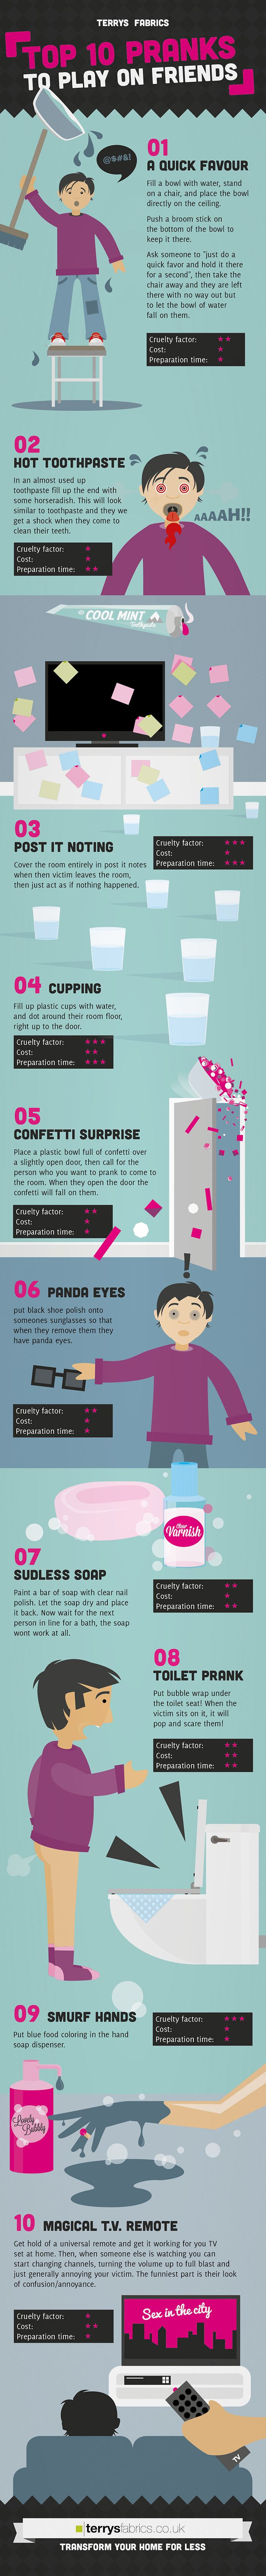 Artwork by David Wildish - Top Ten pranks to play on friends is an illustrated infographic  featuring some cruel, fun and silly pranks to pull on frie